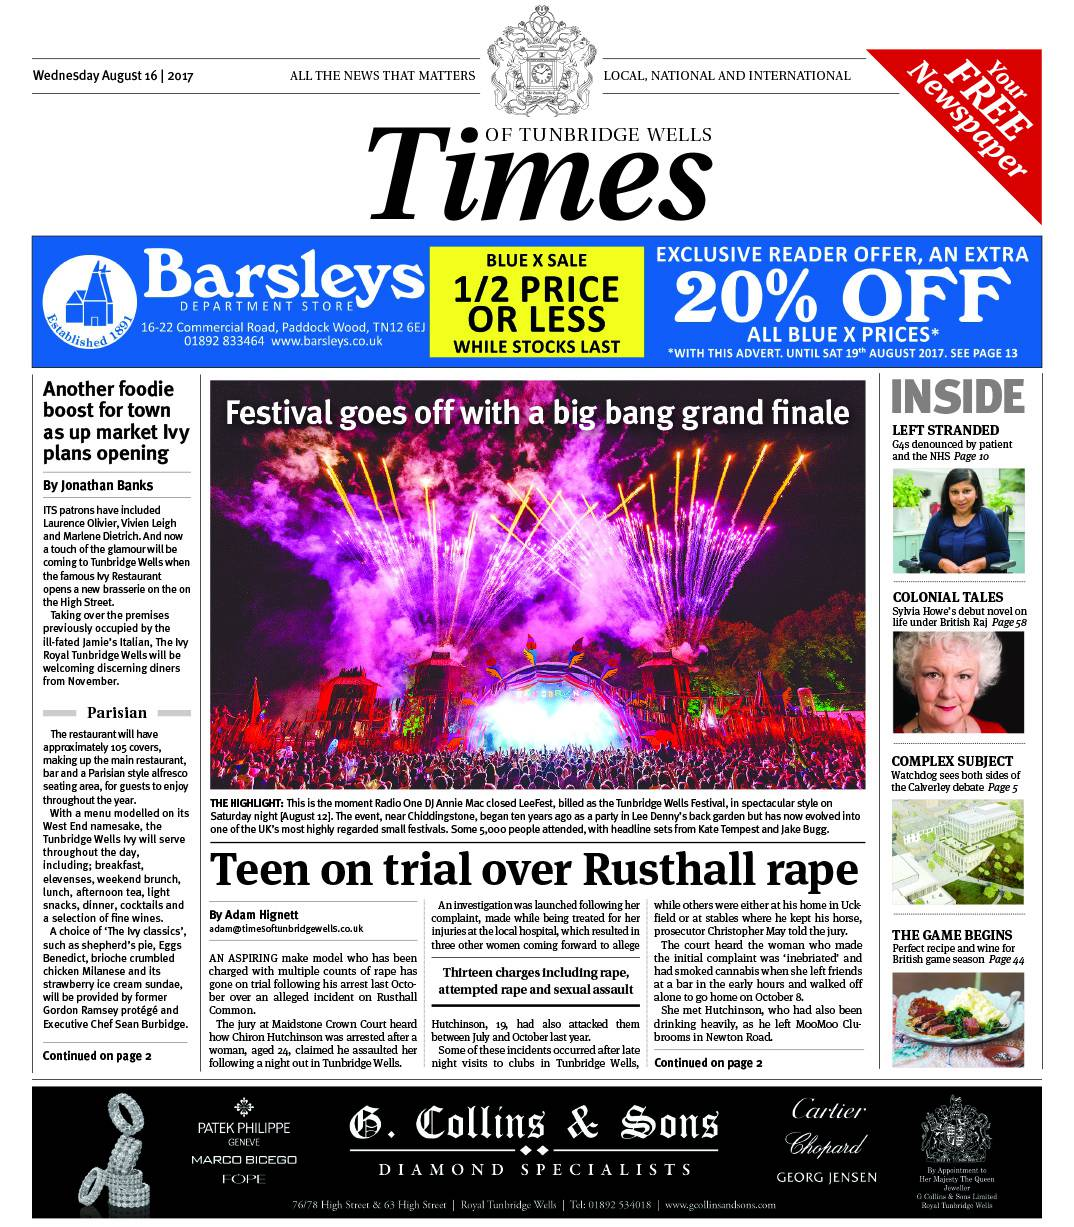 Read the Times of Tunbridge Wells 16th August 2017